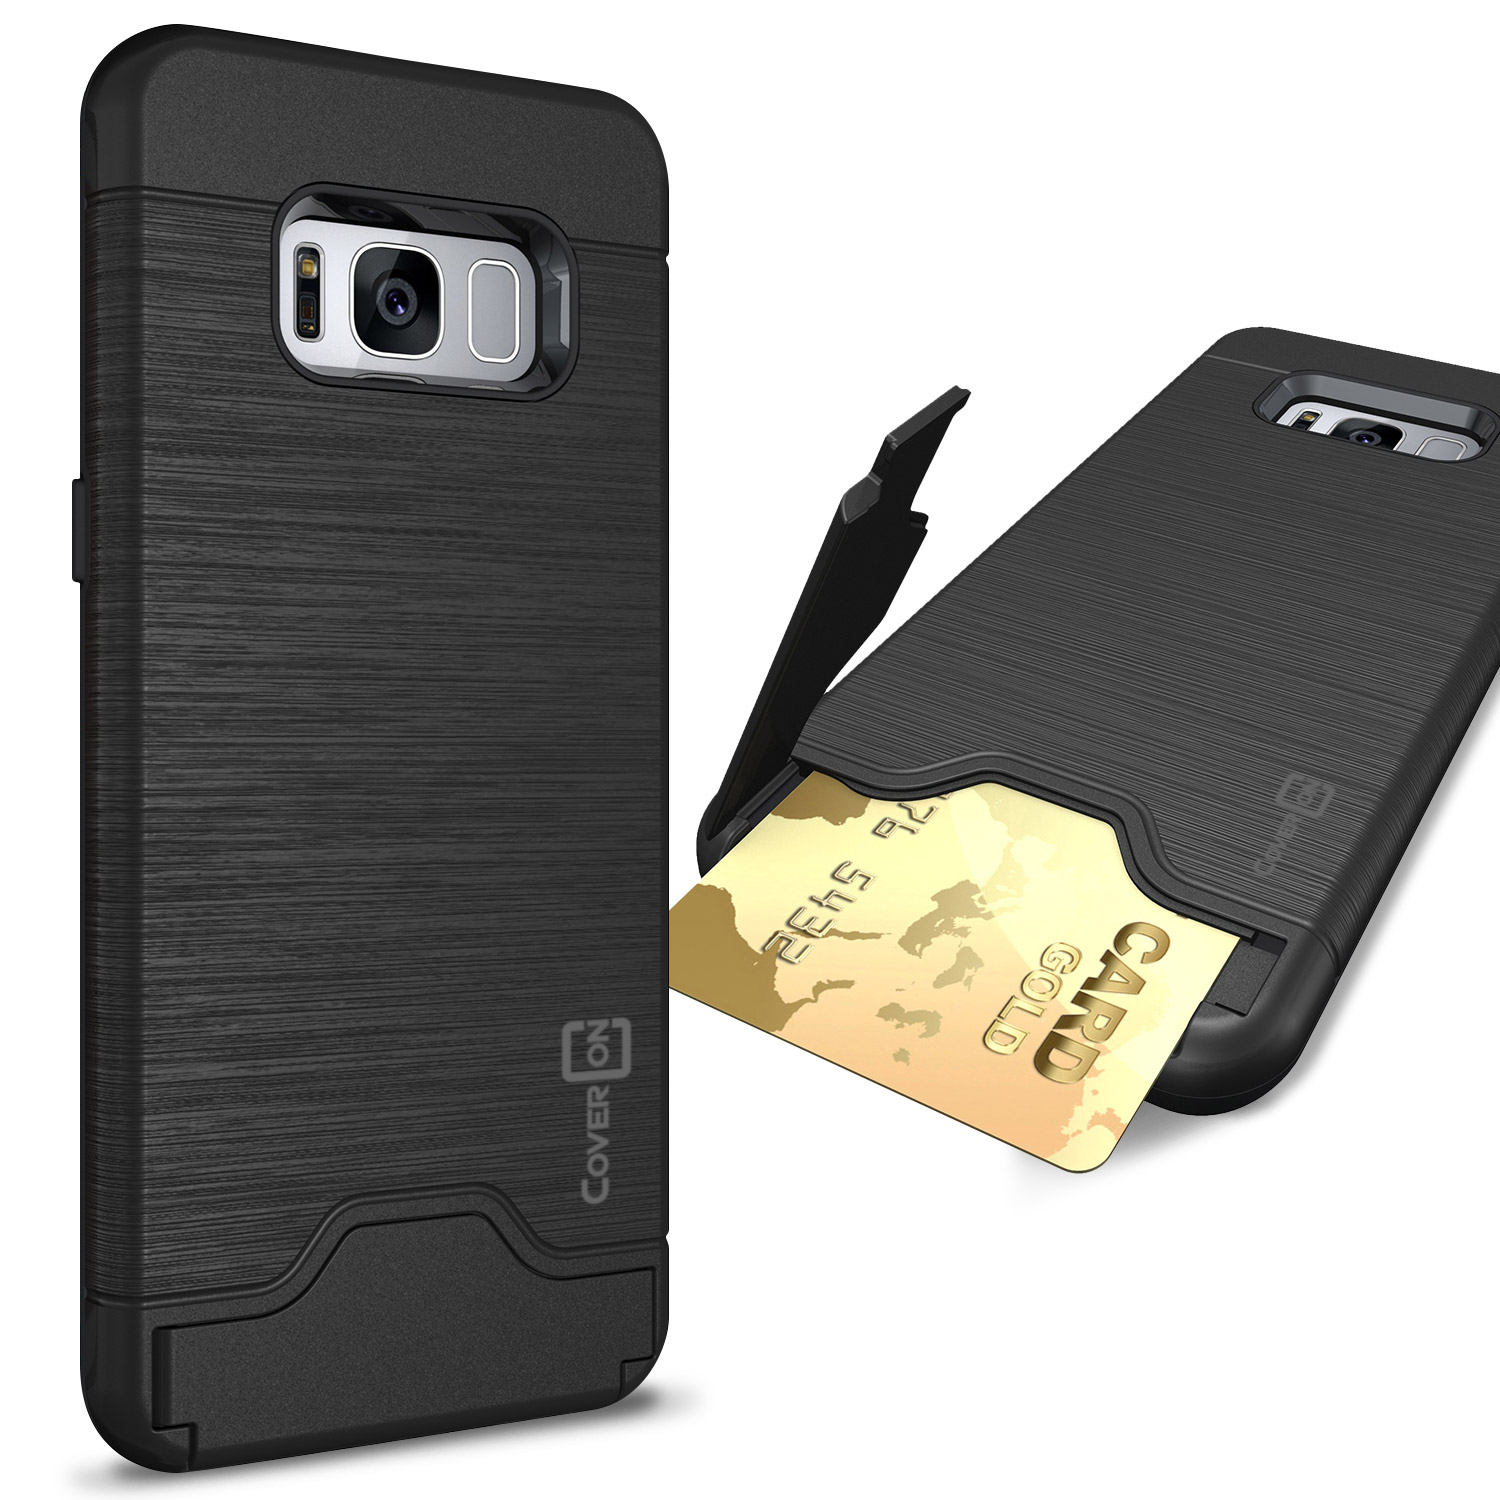 CoverON Samsung Galaxy S8 Case, SecureCard Series Slim Protective Hard Phone Cover with Card Holder Slot